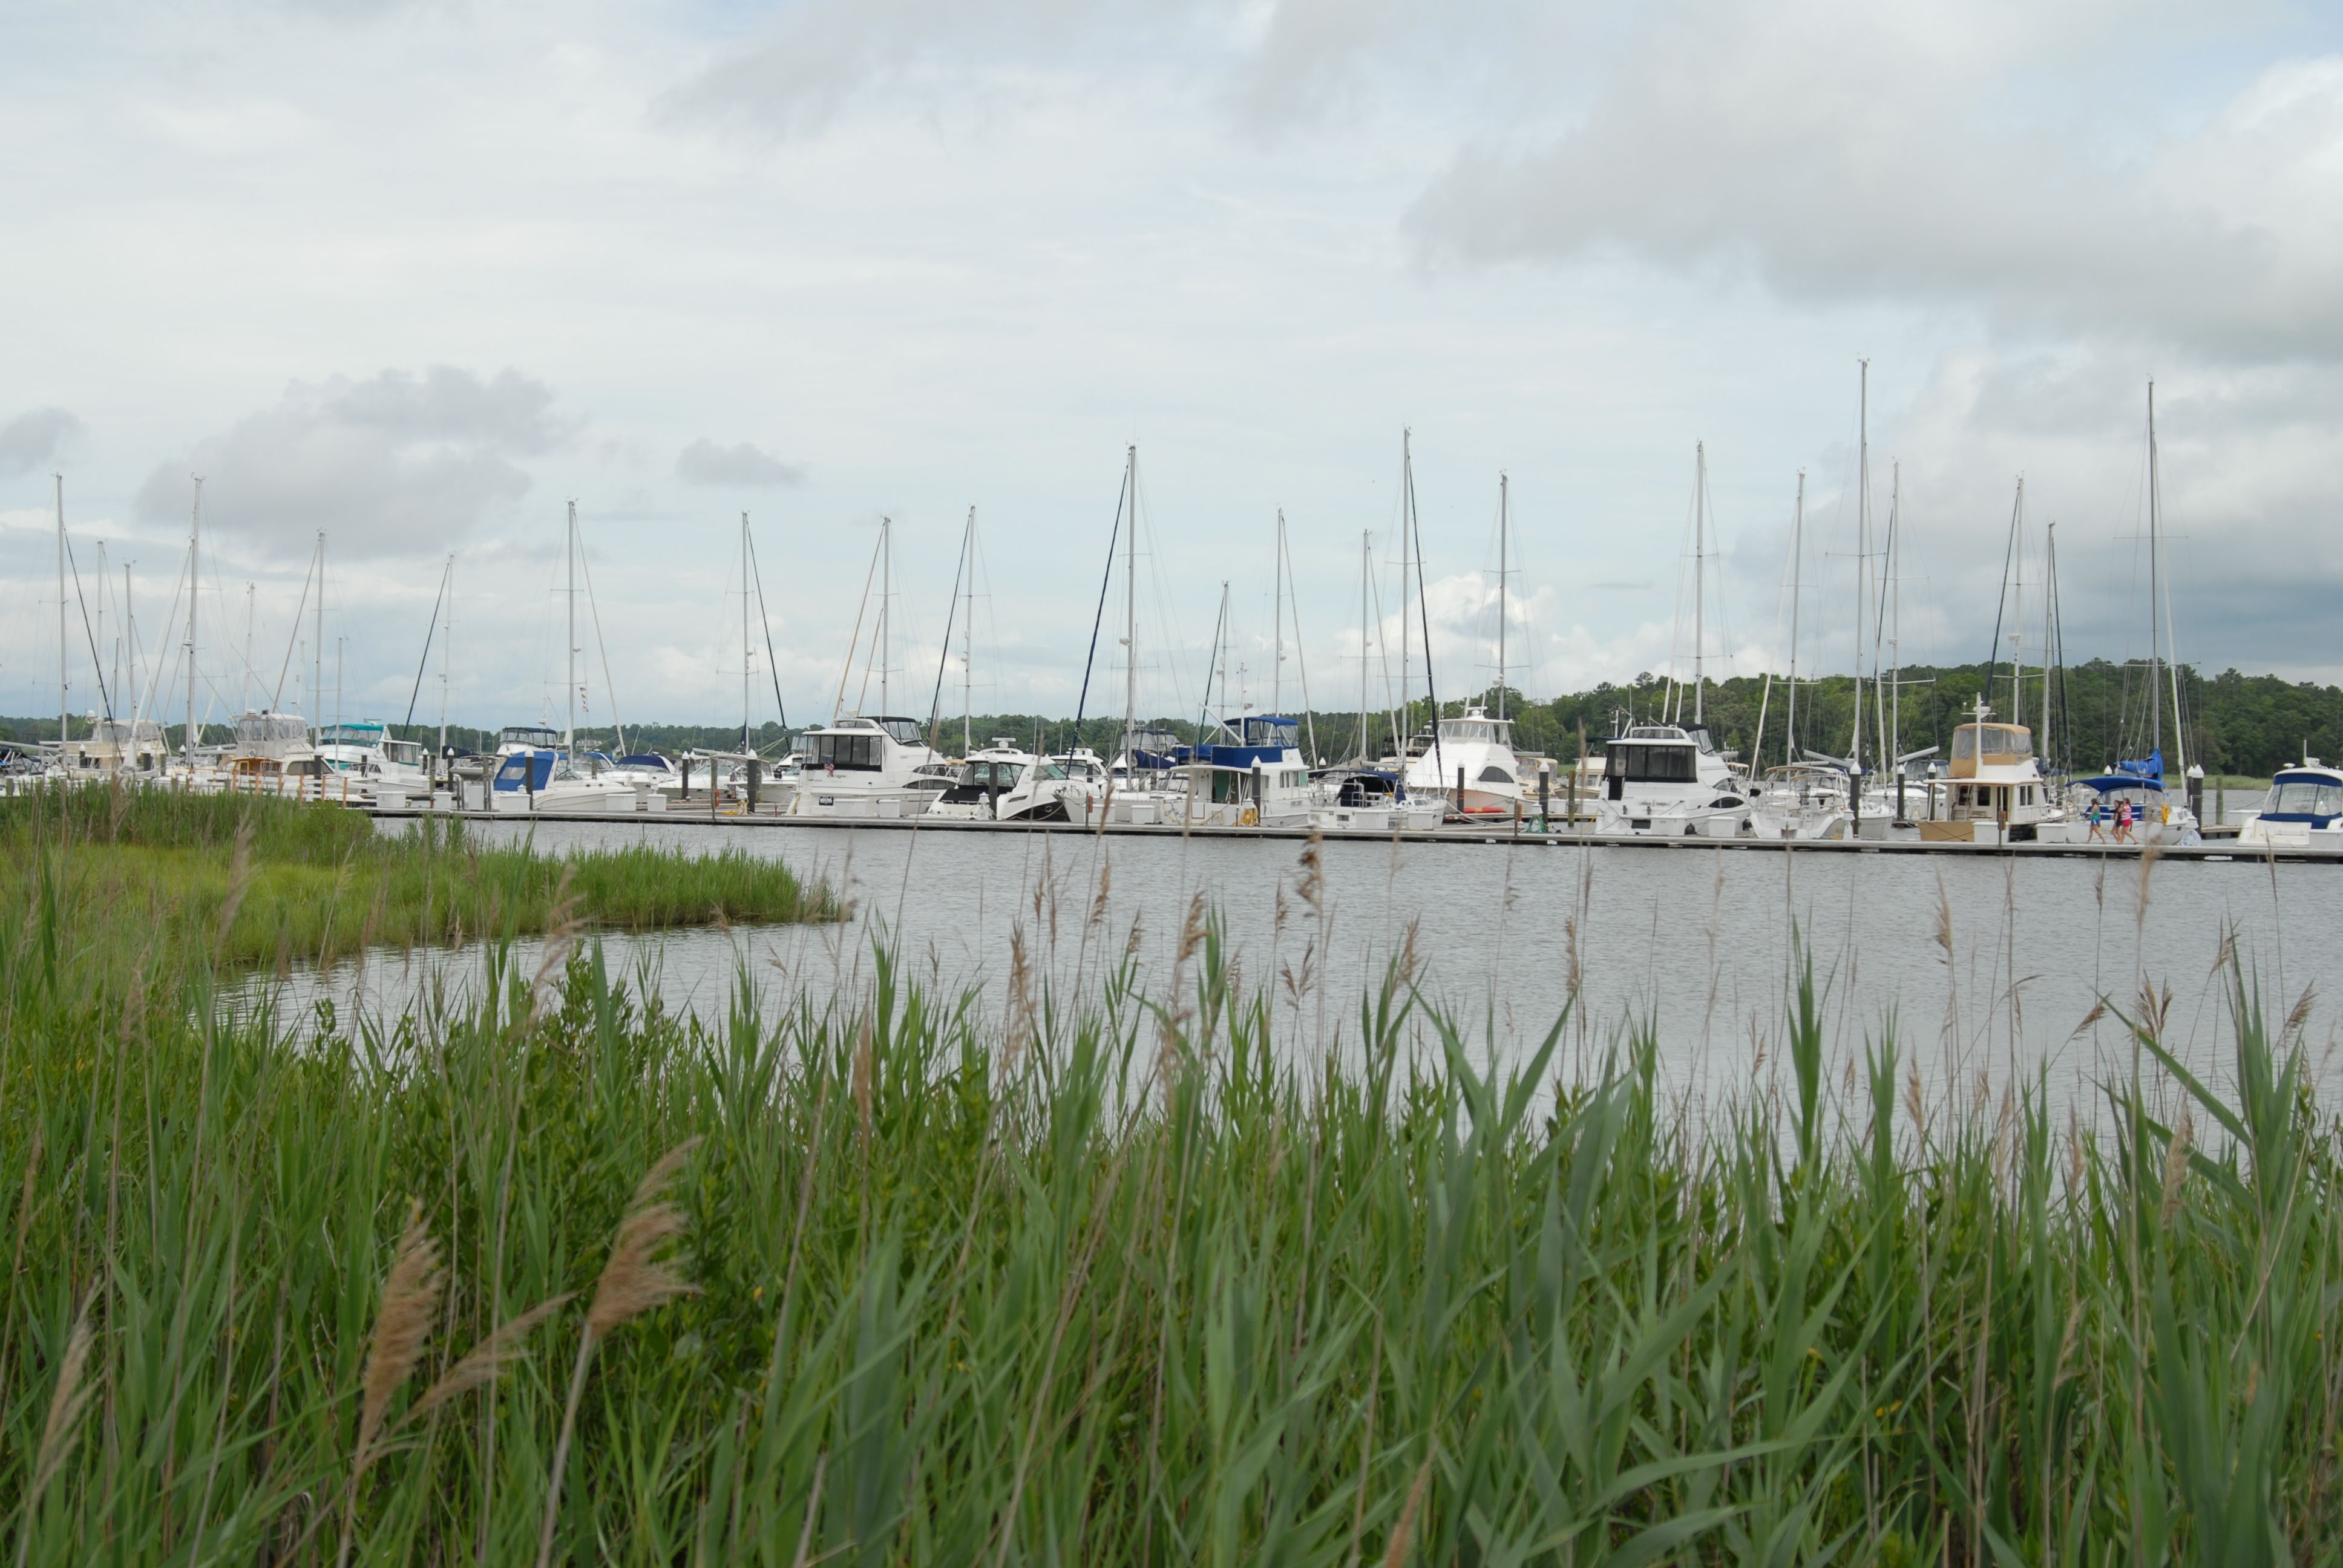 Our Marina is located right next to the beautiful Inn for slip holders or transients. Inn at Osprey Point. Rock Hall. Chesapeake Bay. Eastern Shore. Maryland.